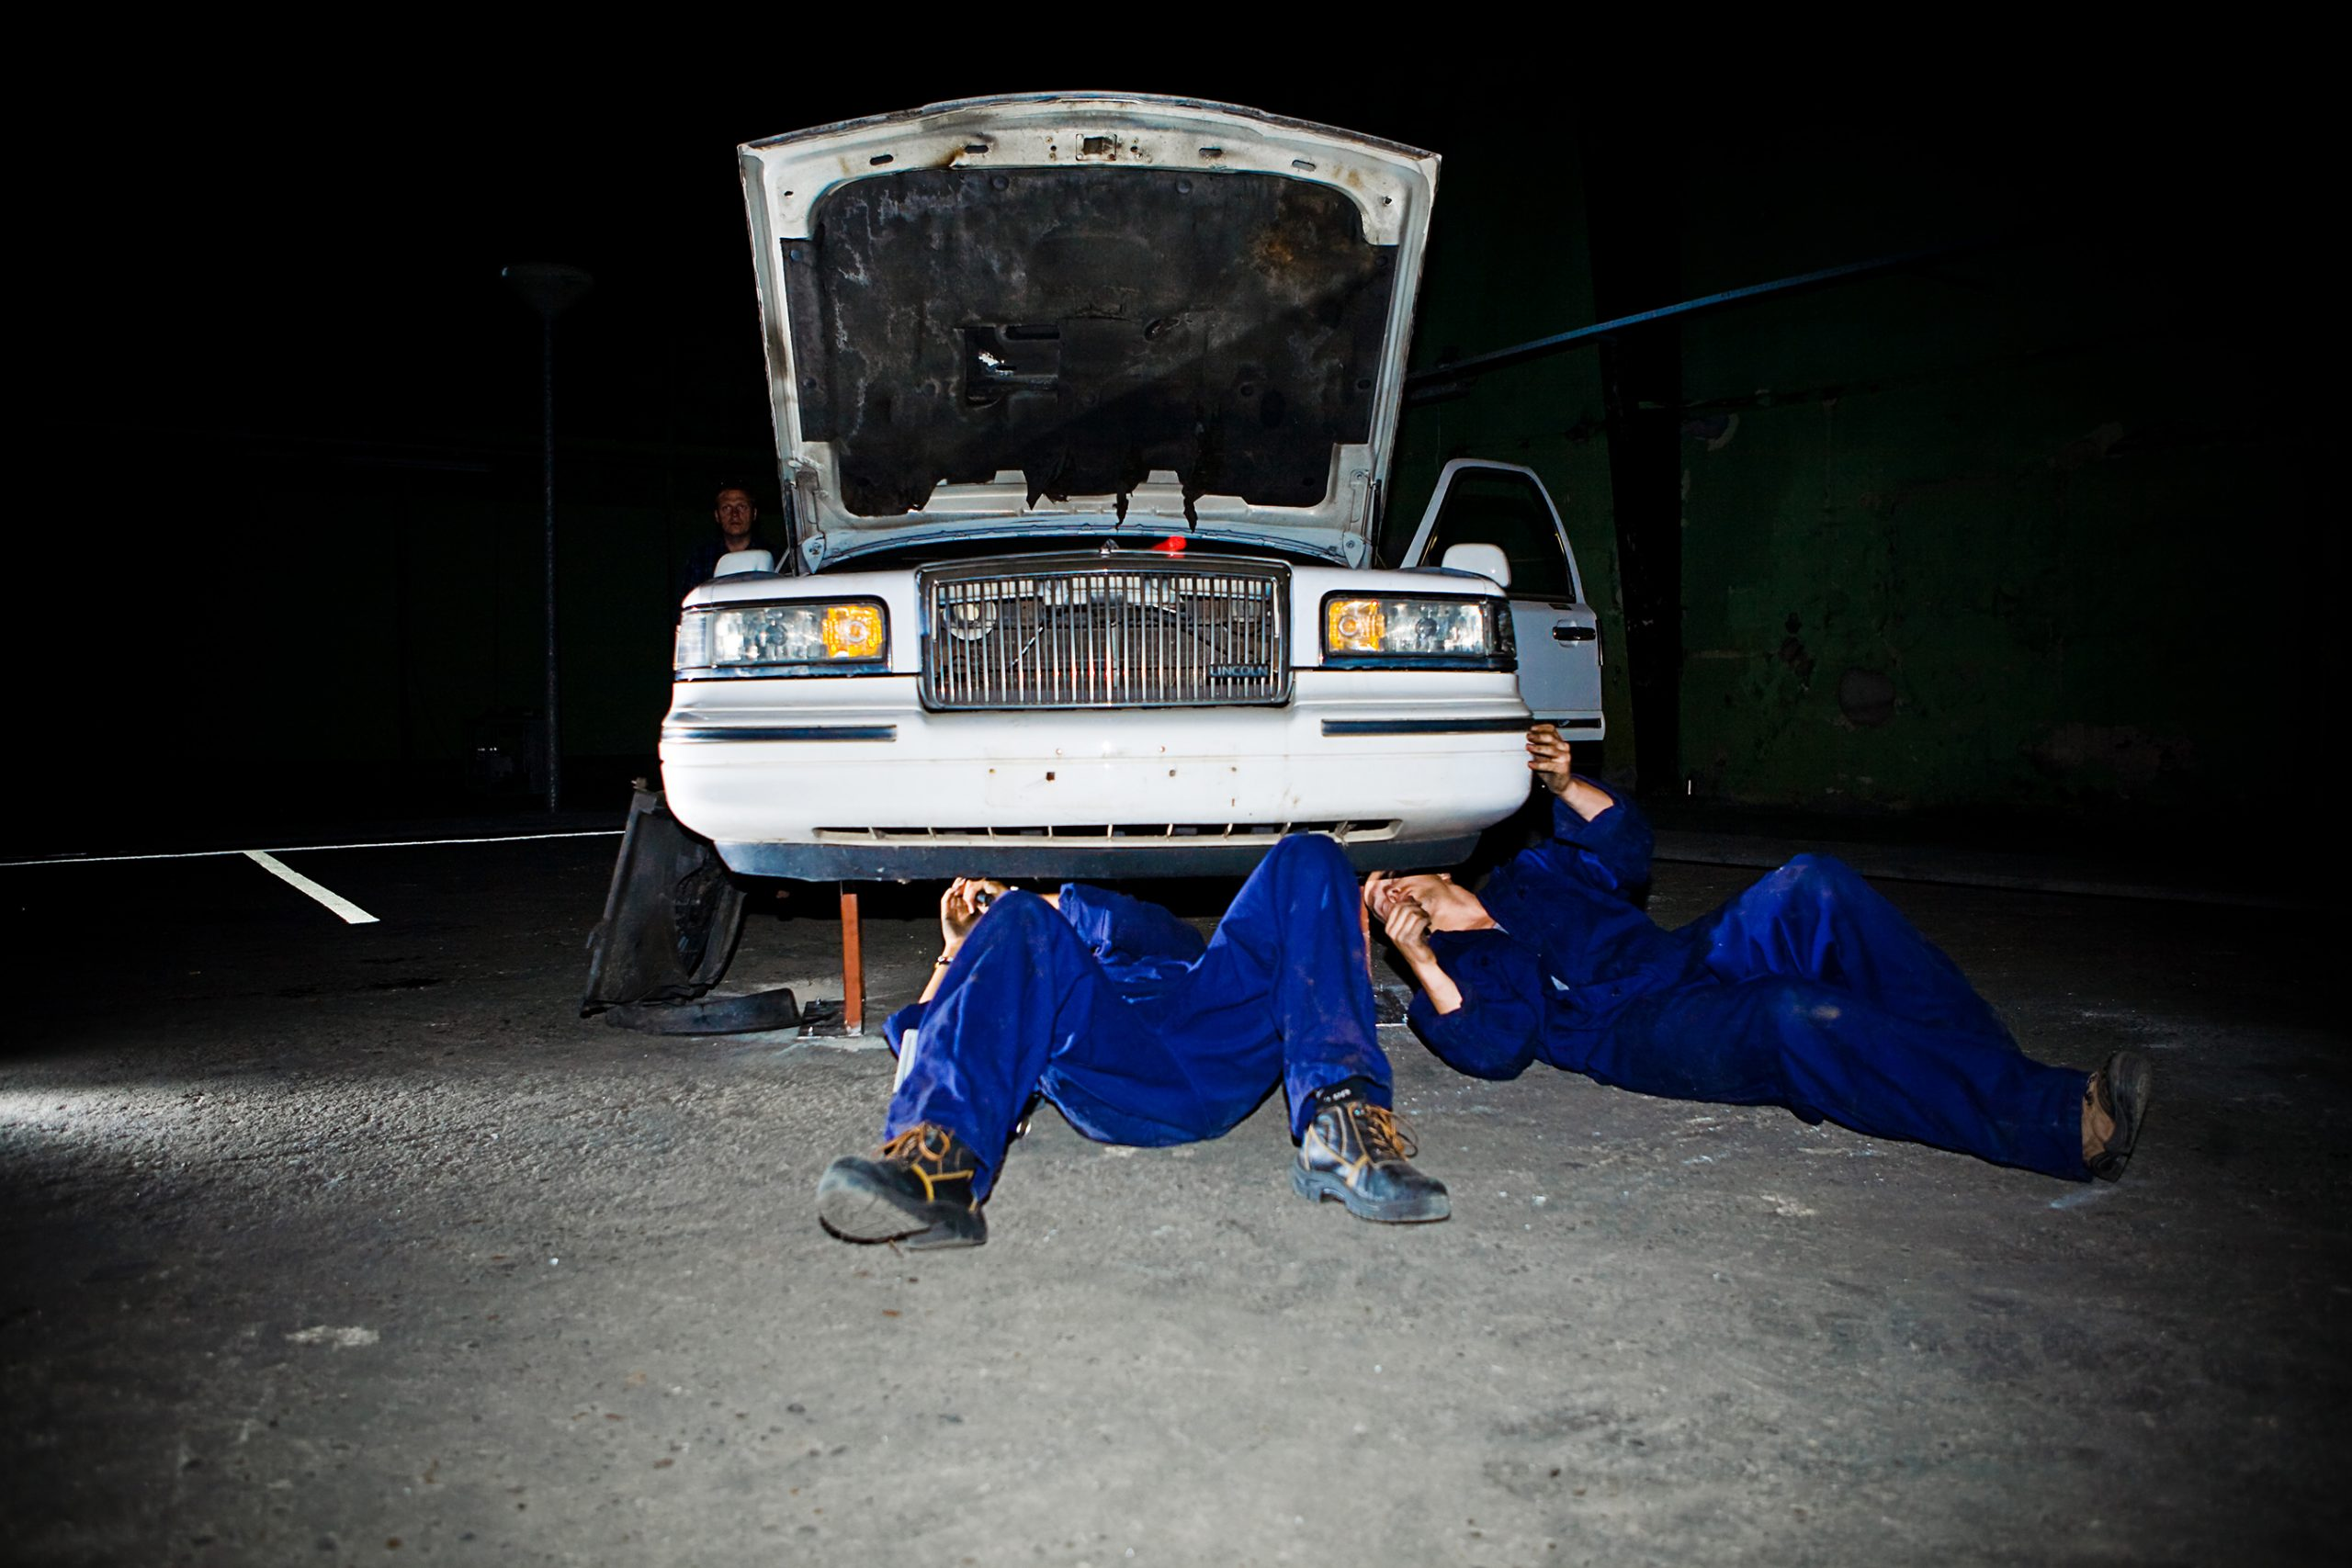 Artwork by Elmgreen & Dragset with two guys fixing a streched limo.